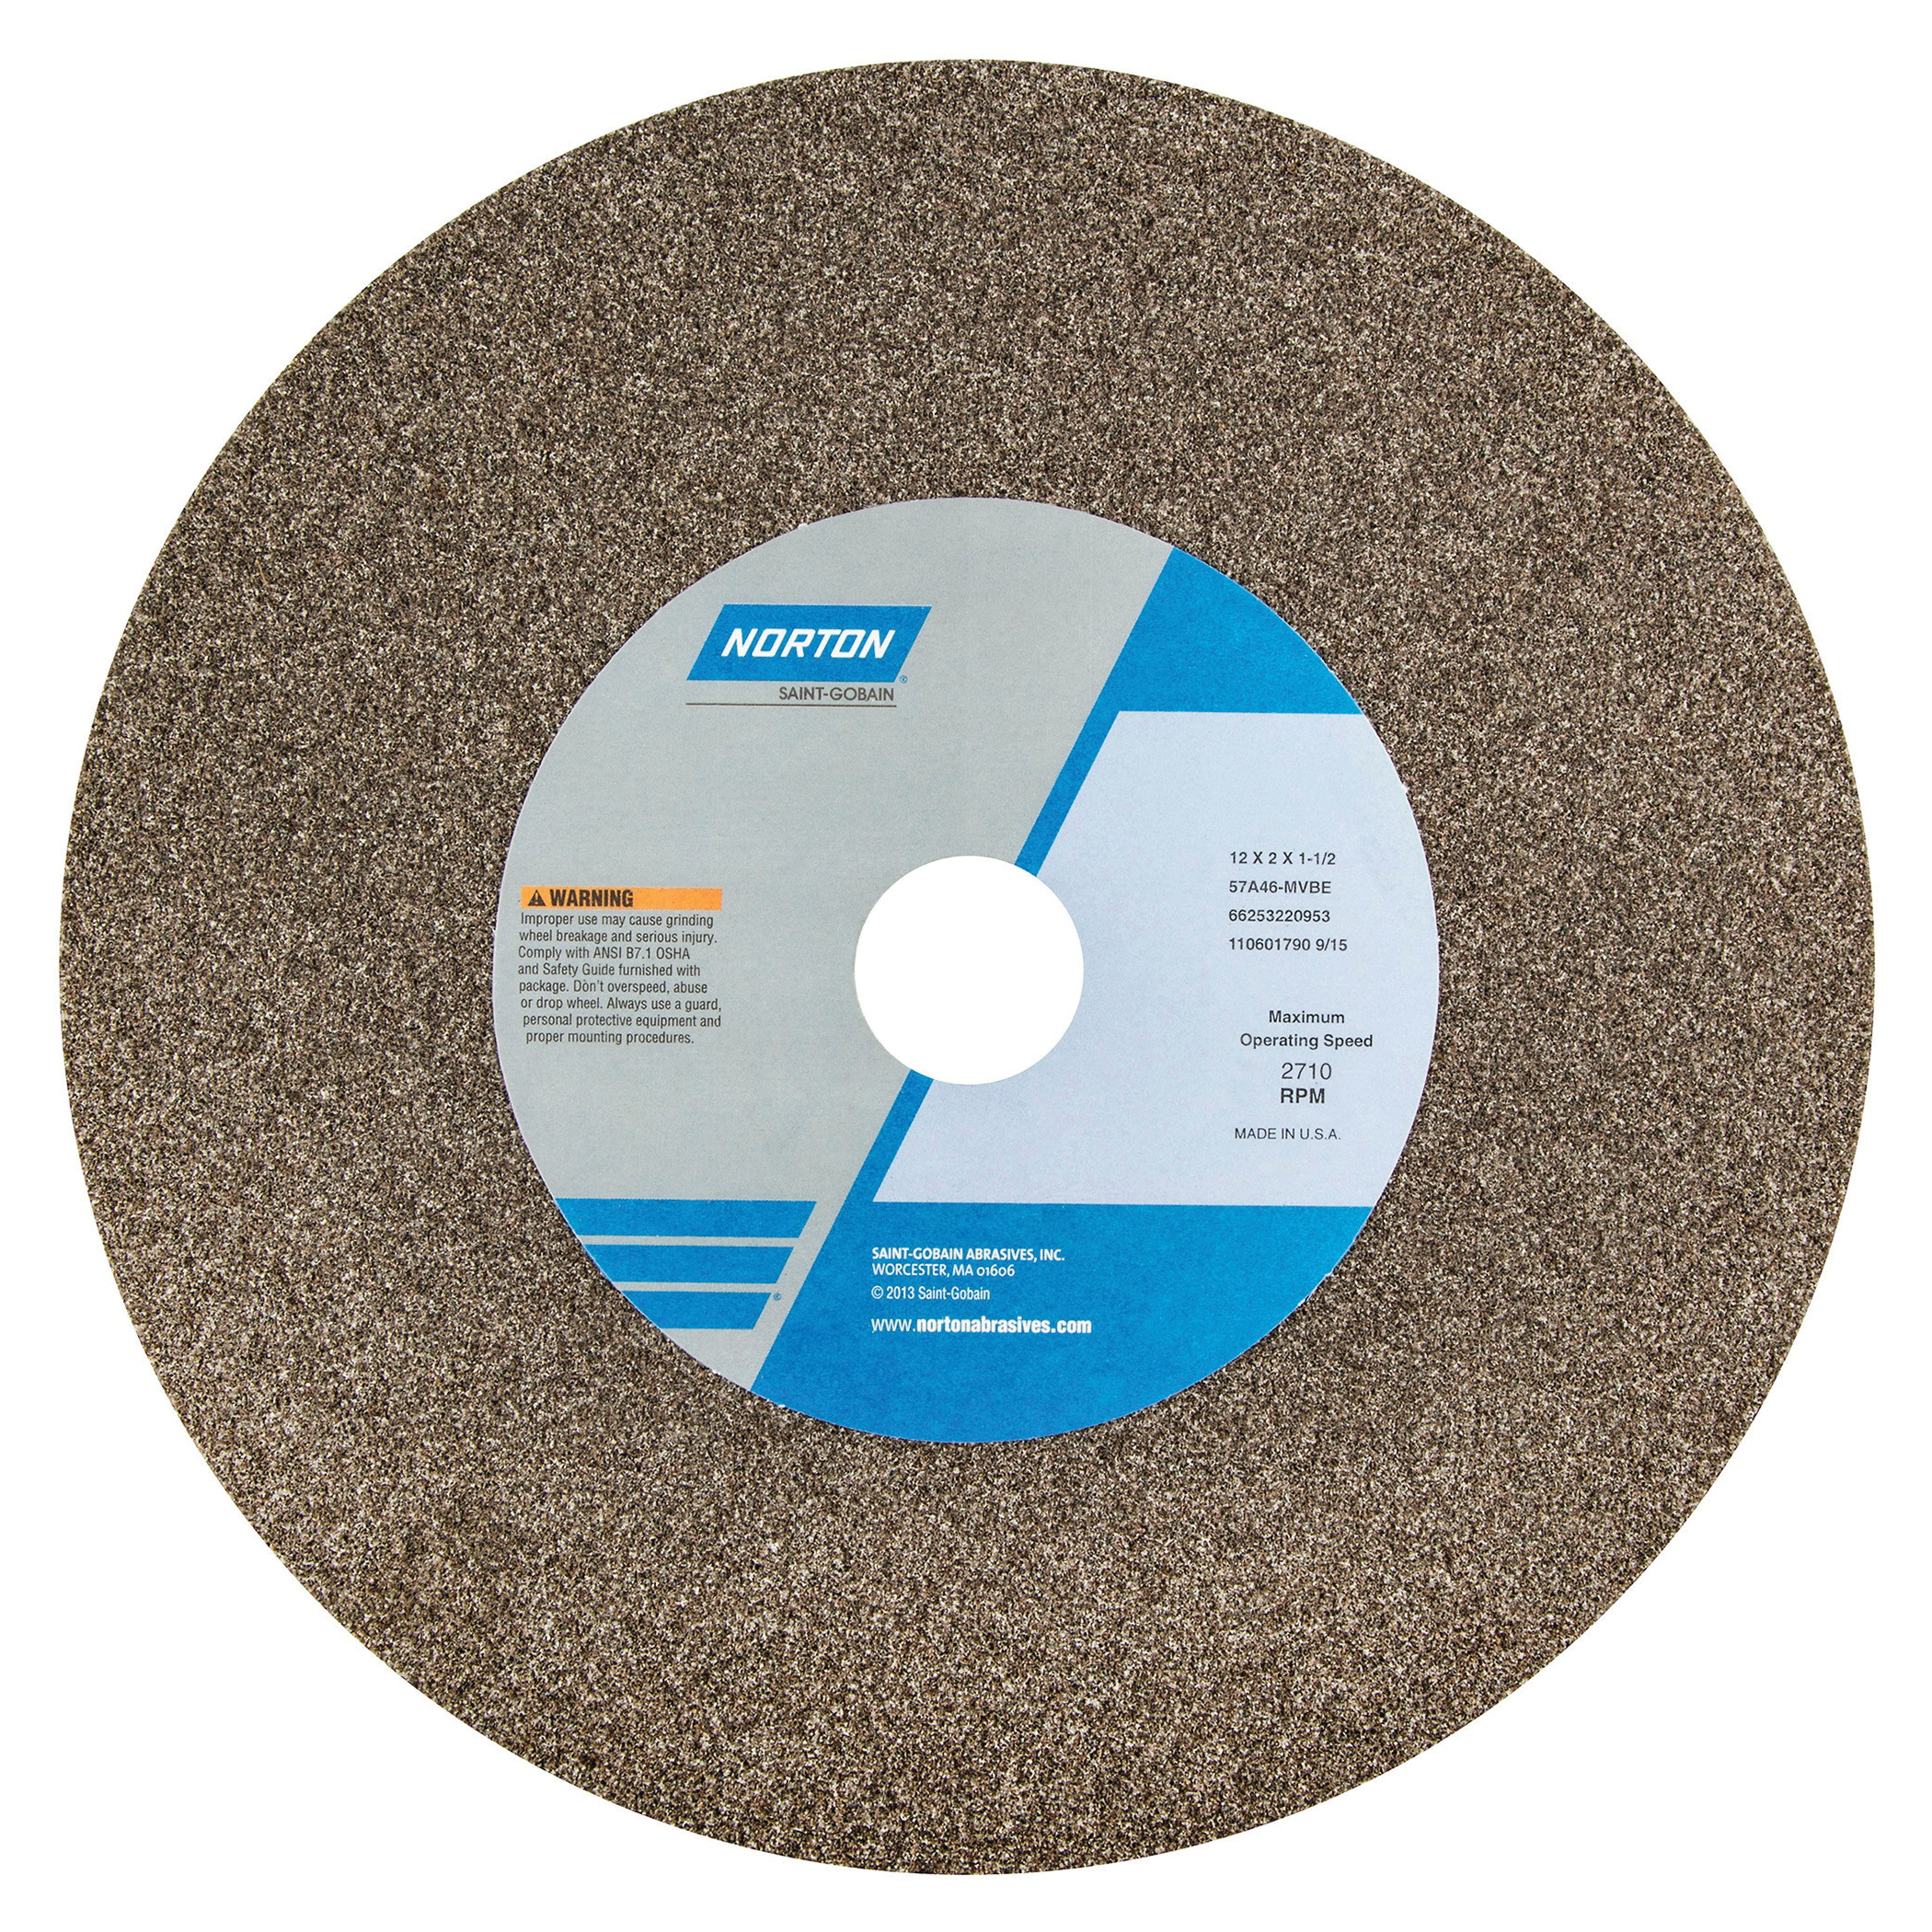 Norton® 66253319977 57A Type 01 Bench and Pedestal Grinding Wheel, 14 in Dia x 3 in THK, 1-1/2 in Center Hole, 36 Grit, Aluminum Oxide Abrasive